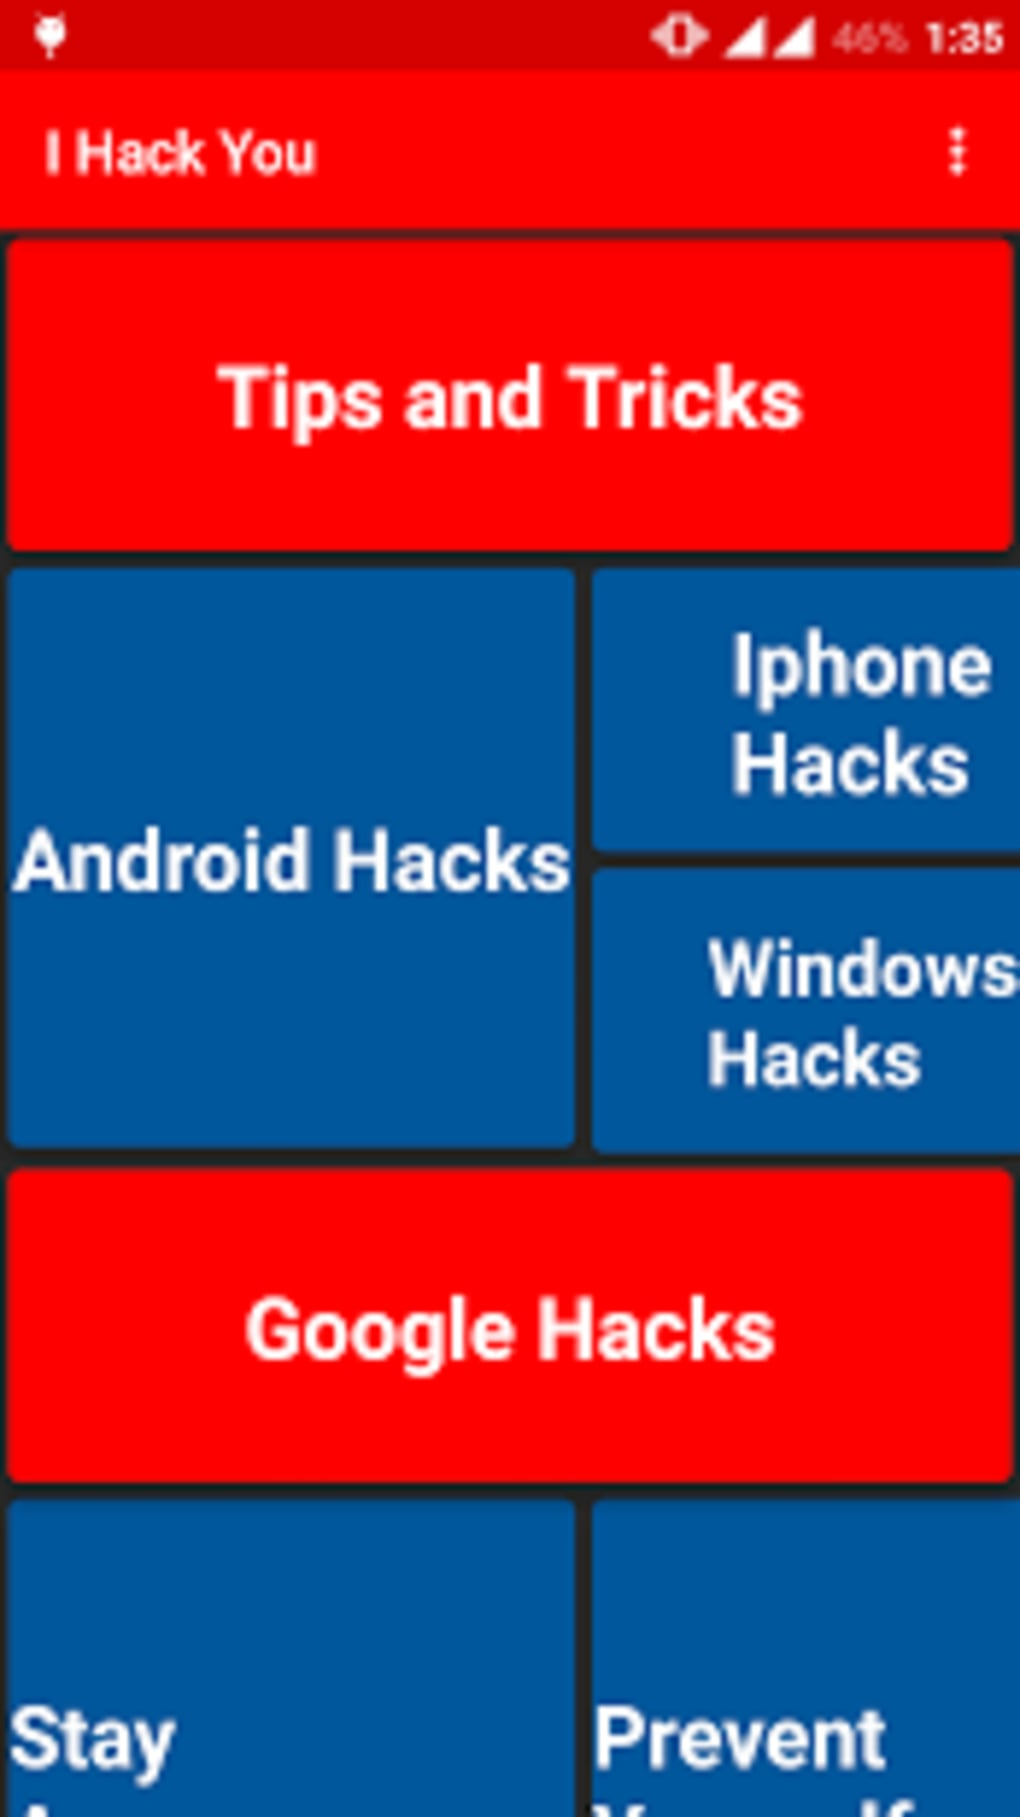 I Hack You for Android - Download